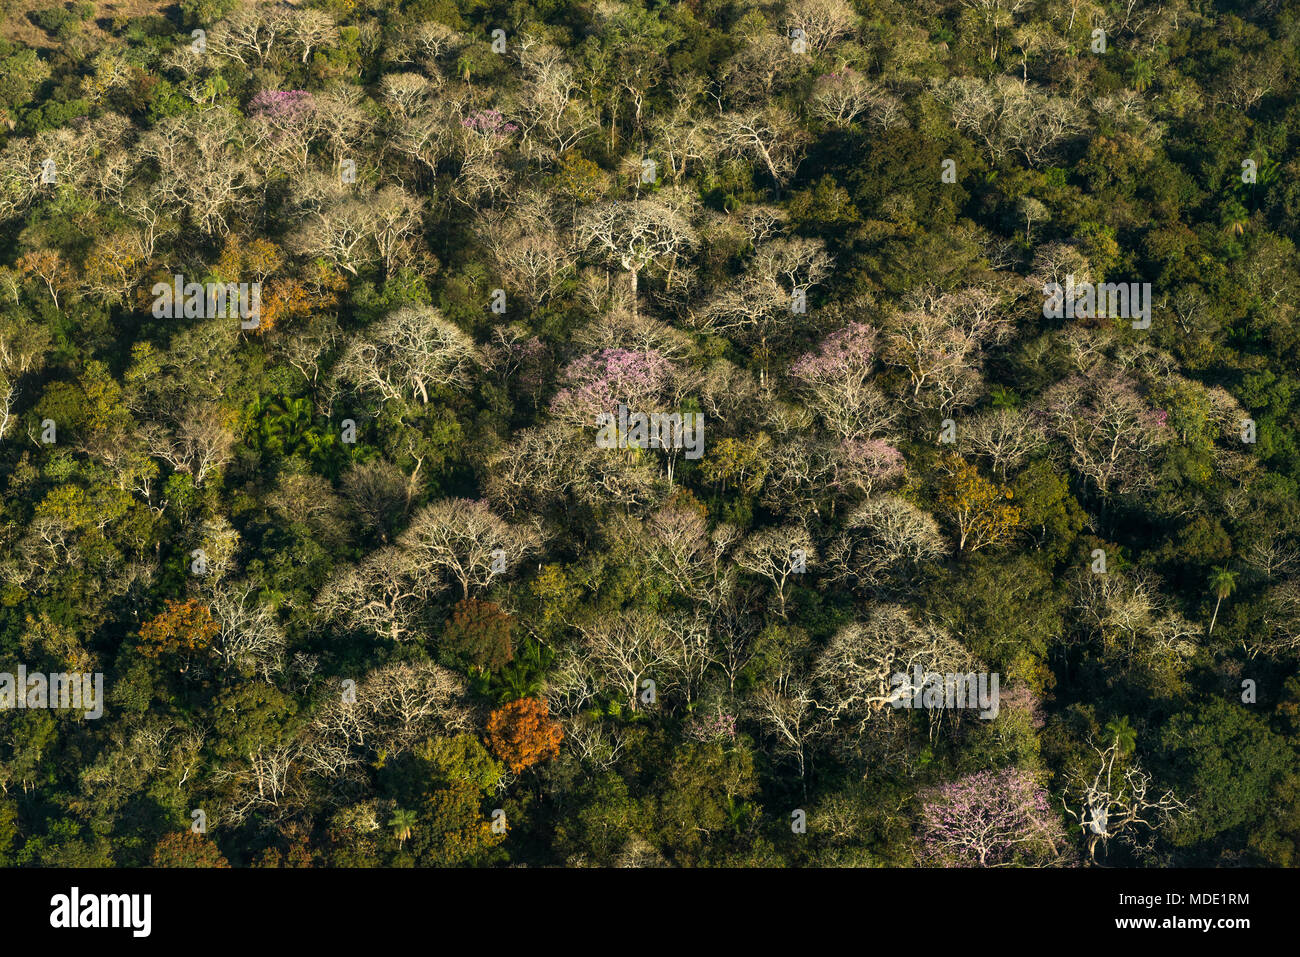 Semi deciduous forest in the Pantanal of Brazil during the dry season - Stock Image